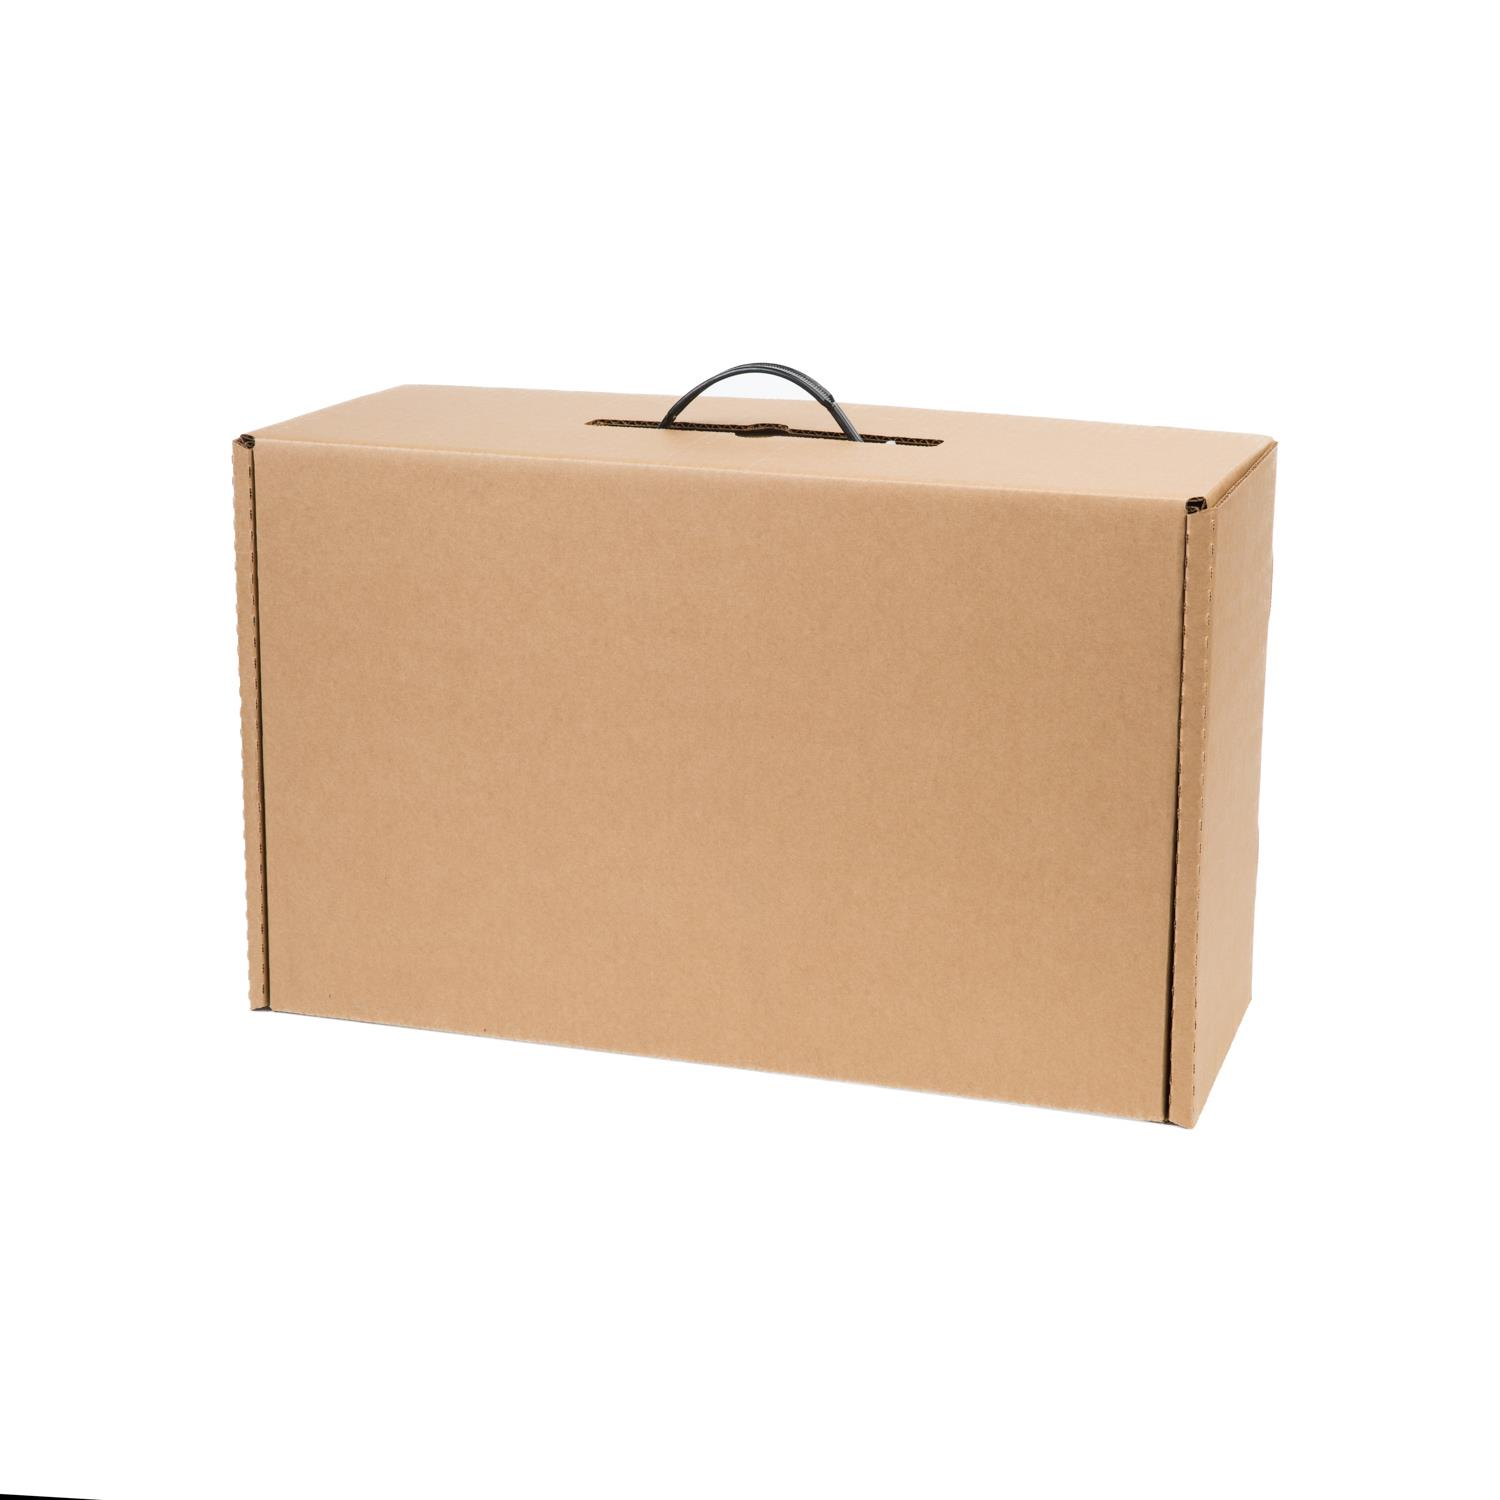 U haul moving supplies shipping boxes supplies travel luggage box reheart Gallery